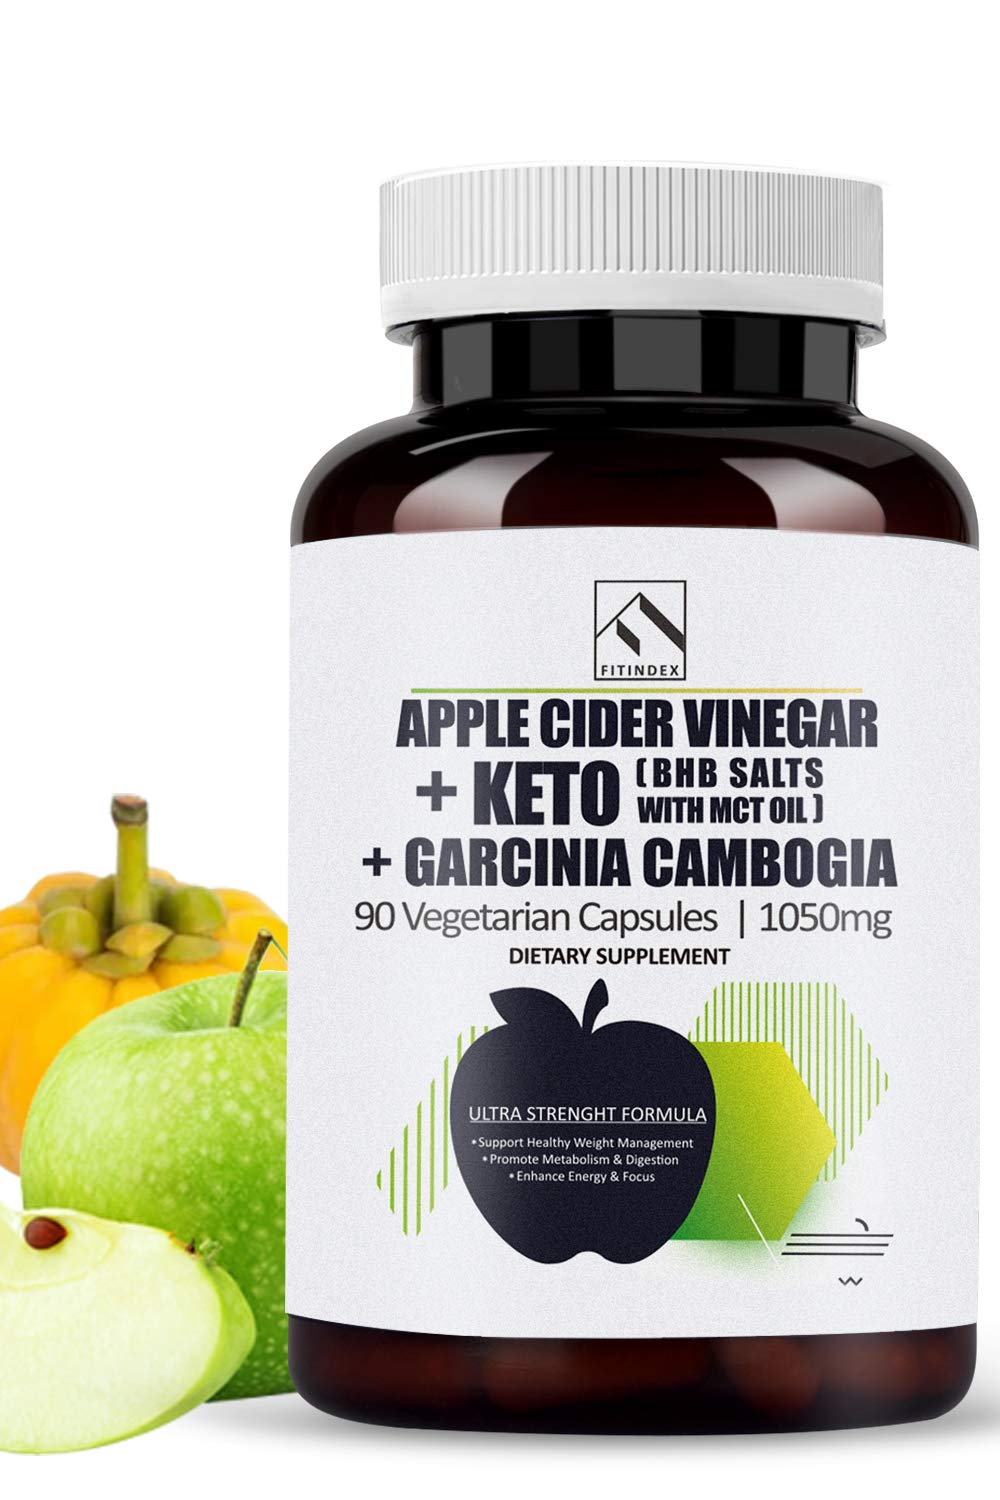 Natural Apple Cider Vinegar Capsules 90 & BHB Salts & Garcinia Cambogia Extract Keto Diet Pills with MCT Oil Powder, Exogenous Ketones Detox Cleanse Weight Loss Pills for Women Men Work Fast